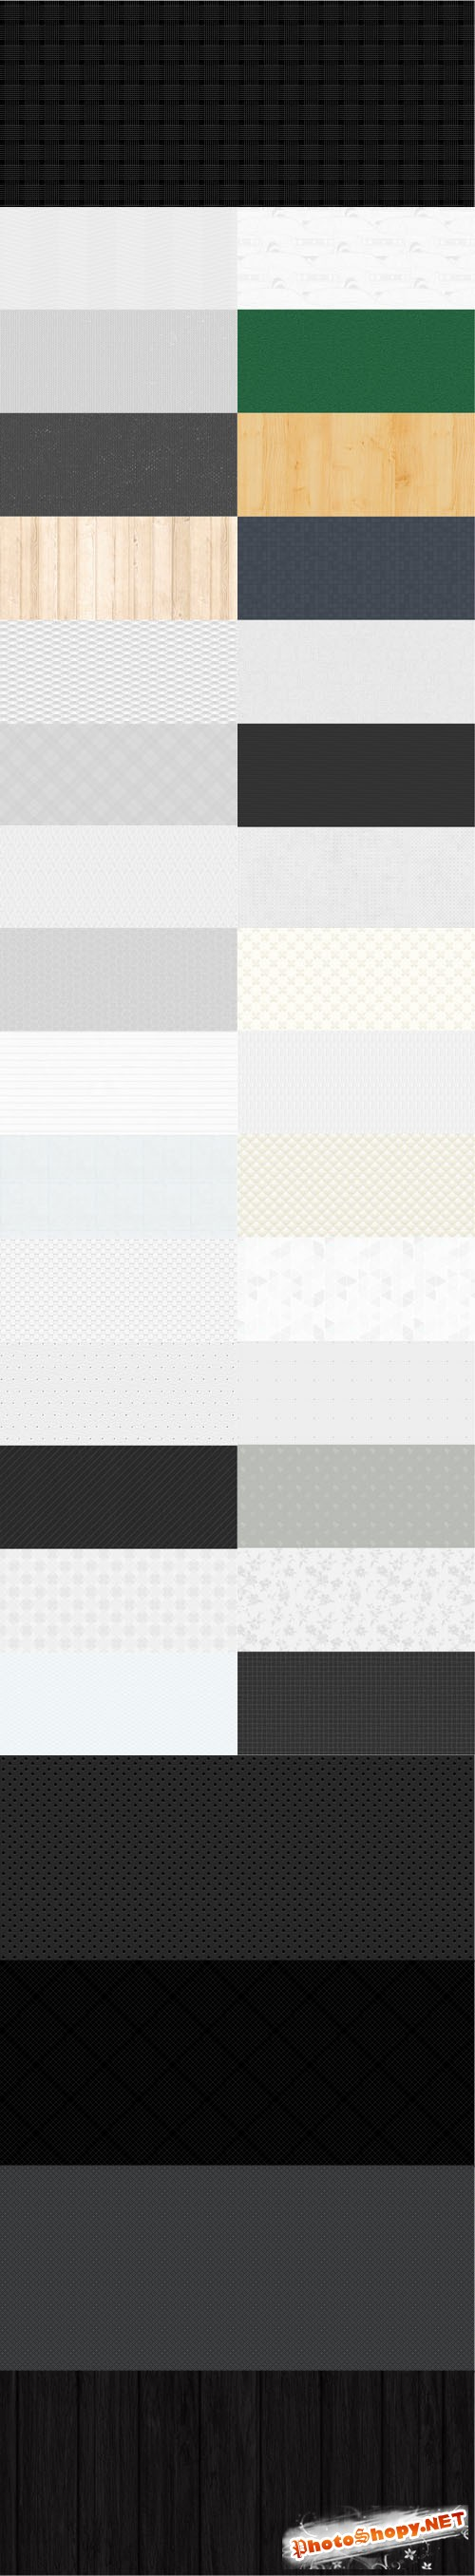 Colourful Photoshop Patterns Pack